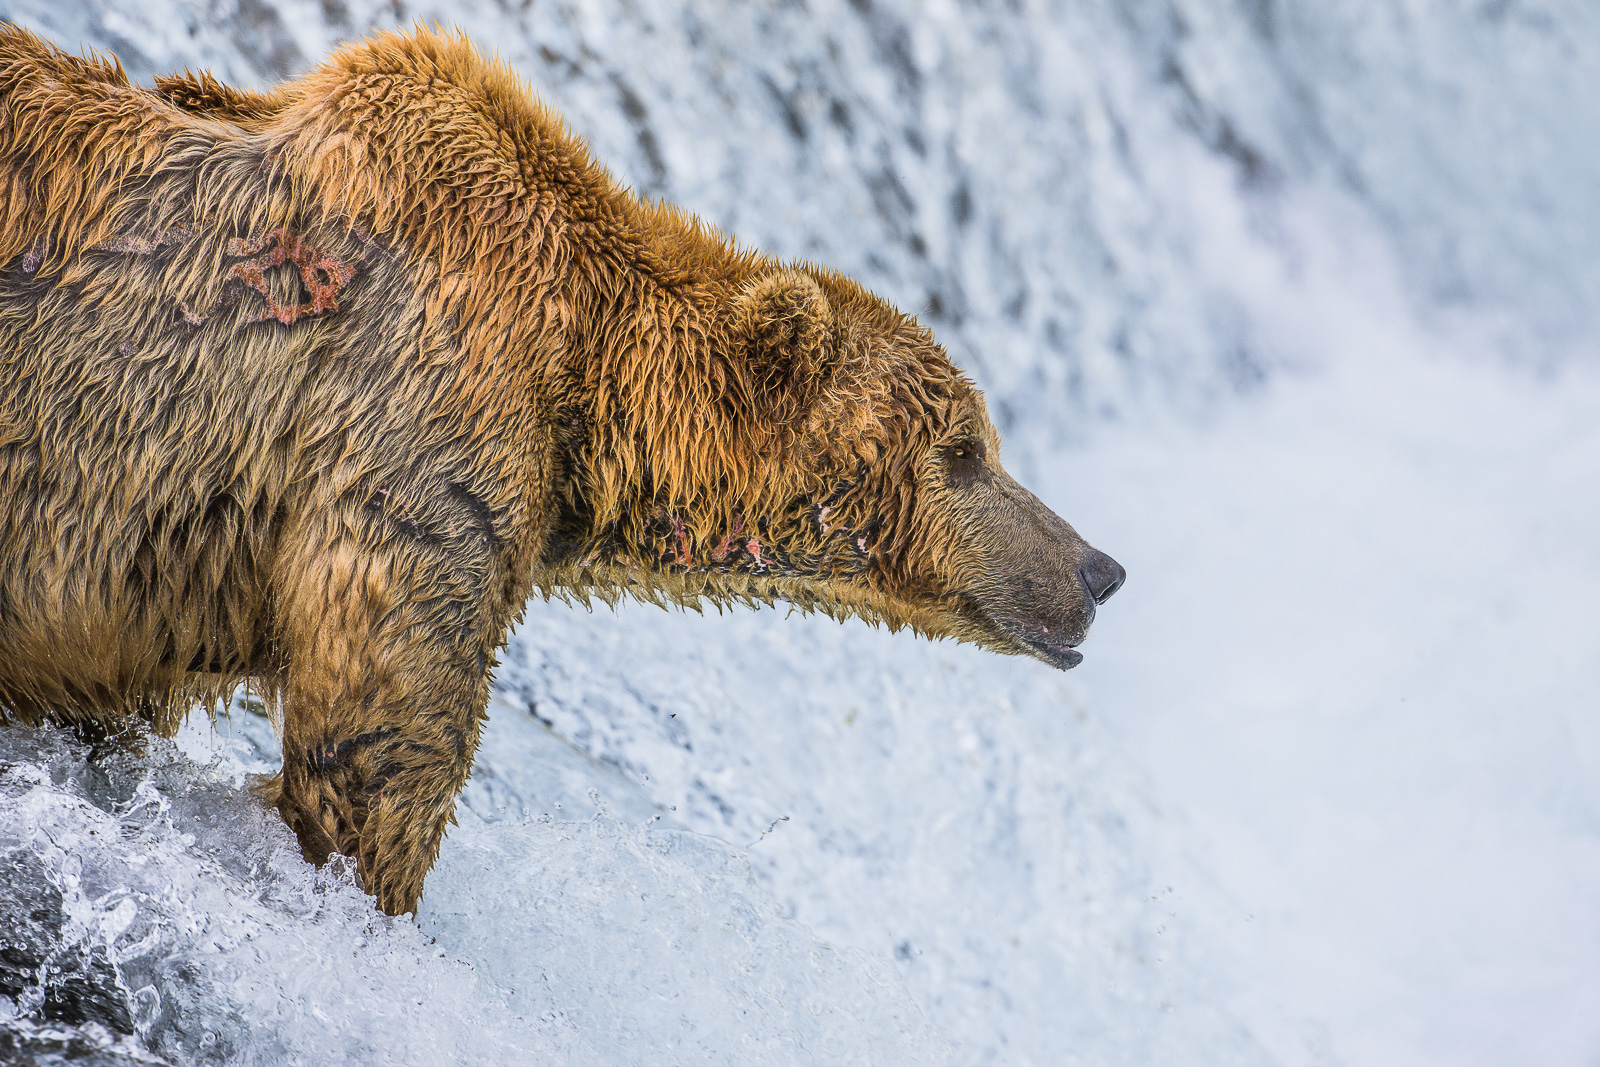 Where are the Fish?,peninsula,hunt,salmon,Wildlife,river,water,katmai national park,landscape, bear, grizzly, photo